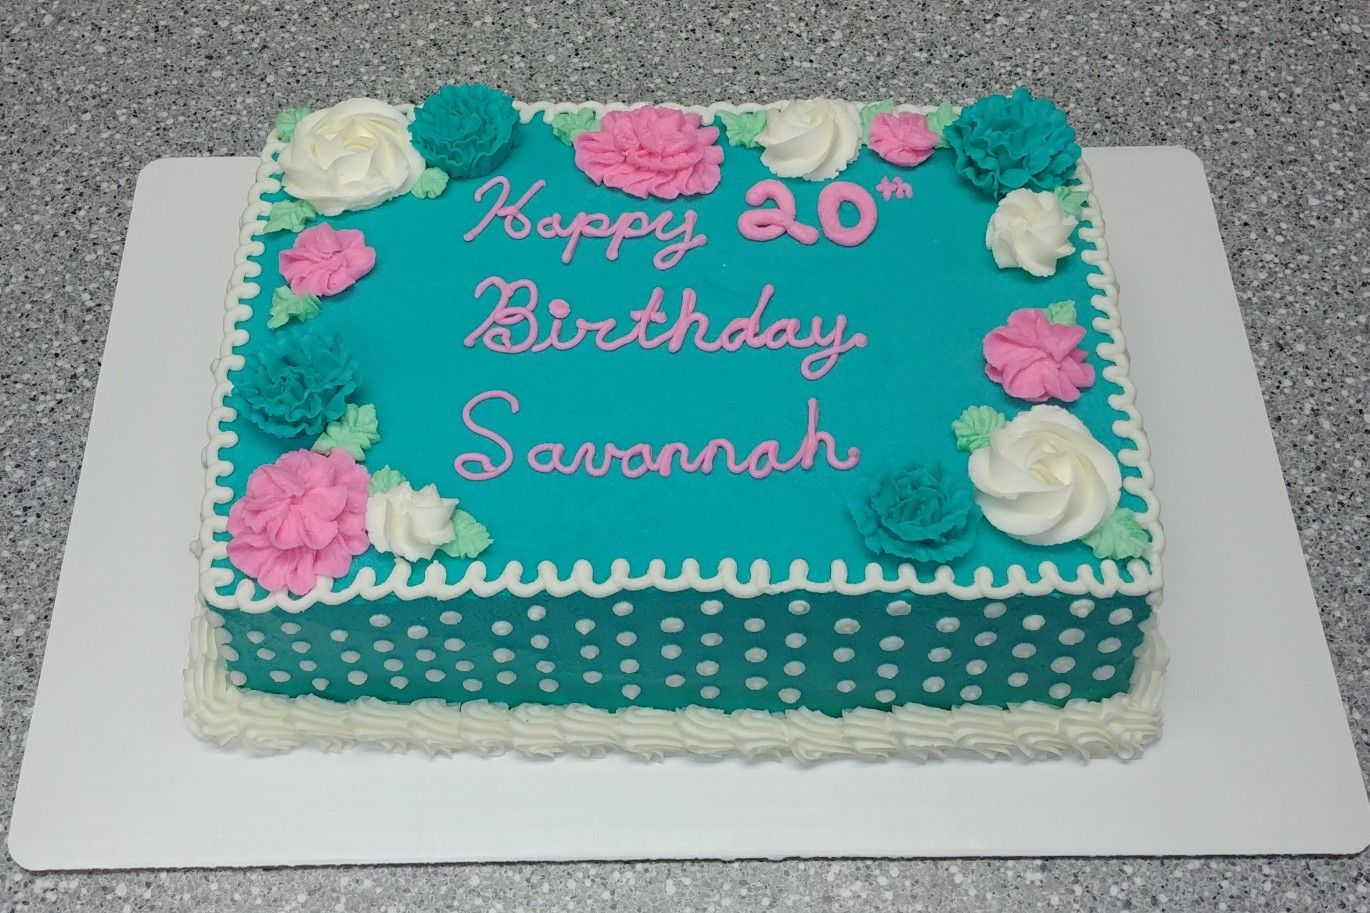 9x13 Cake Decorated With Buttercream Frosting Pretty Flowers And